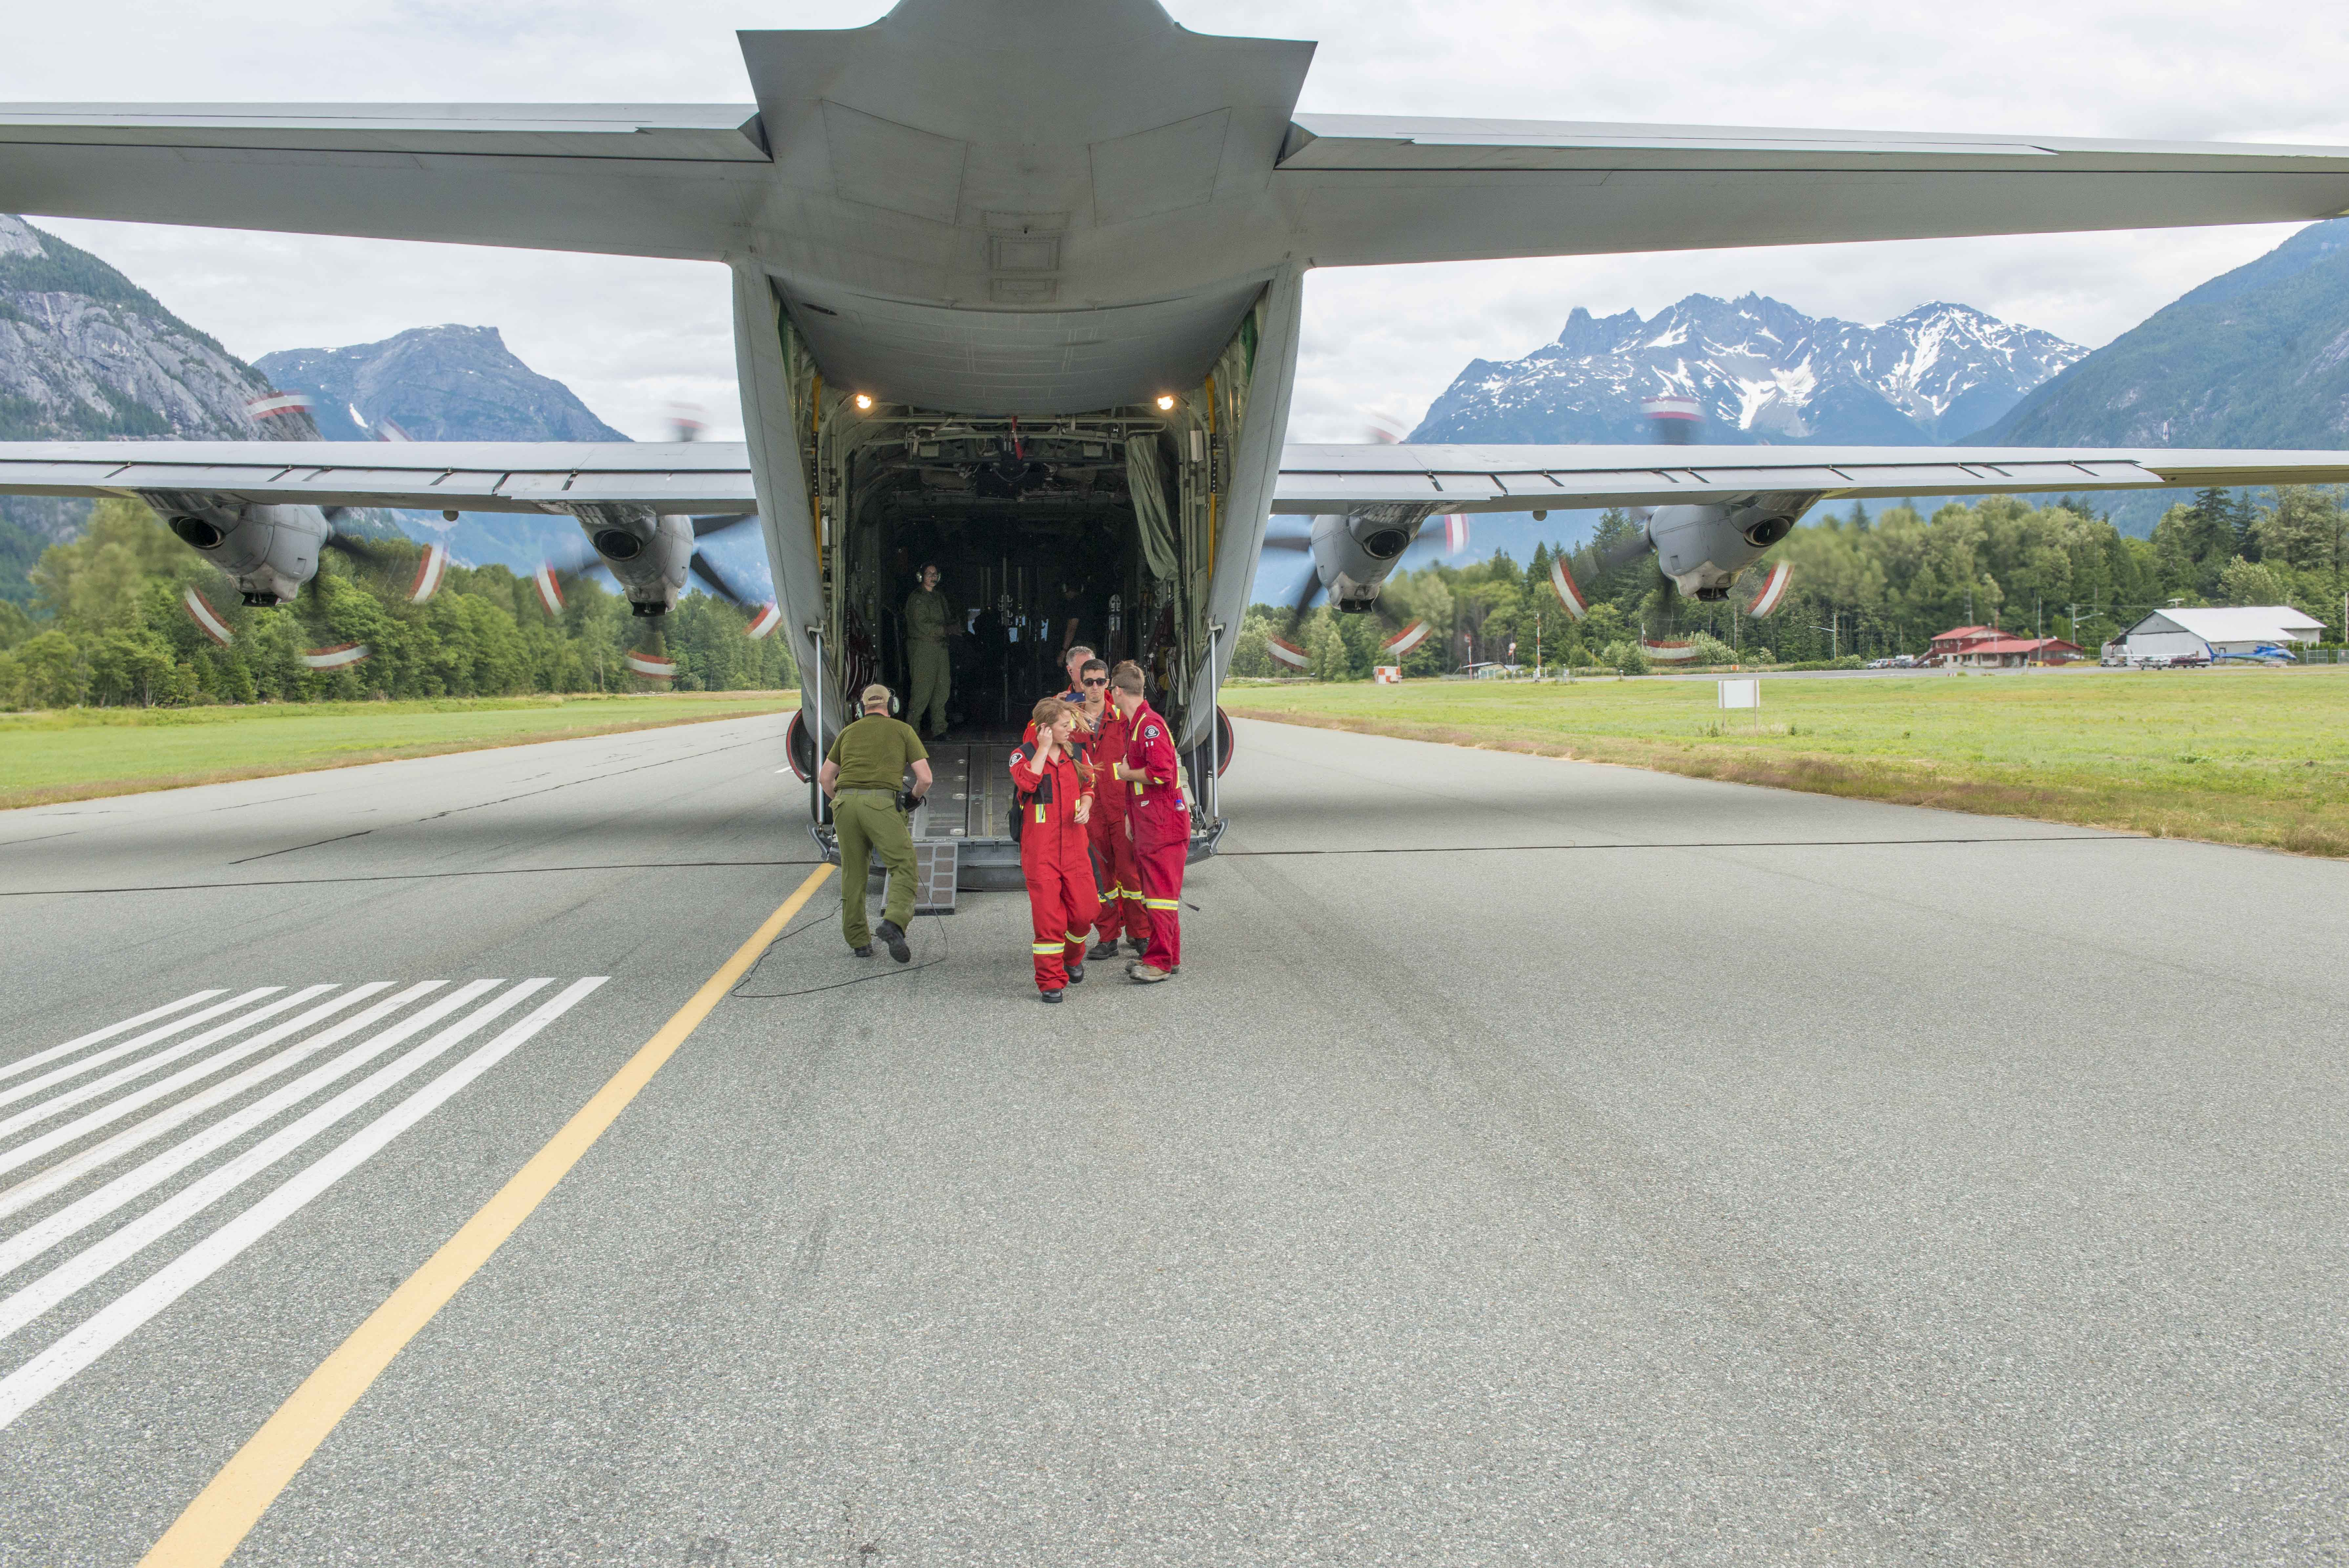 Bella Coola, British Columbia. July 11, 2017 – Comox Fire Fighters get off a Hercules in support of Operation LENTUS17-04. (Image: Cpl Nathan Spence, 19 Wing Imaging)